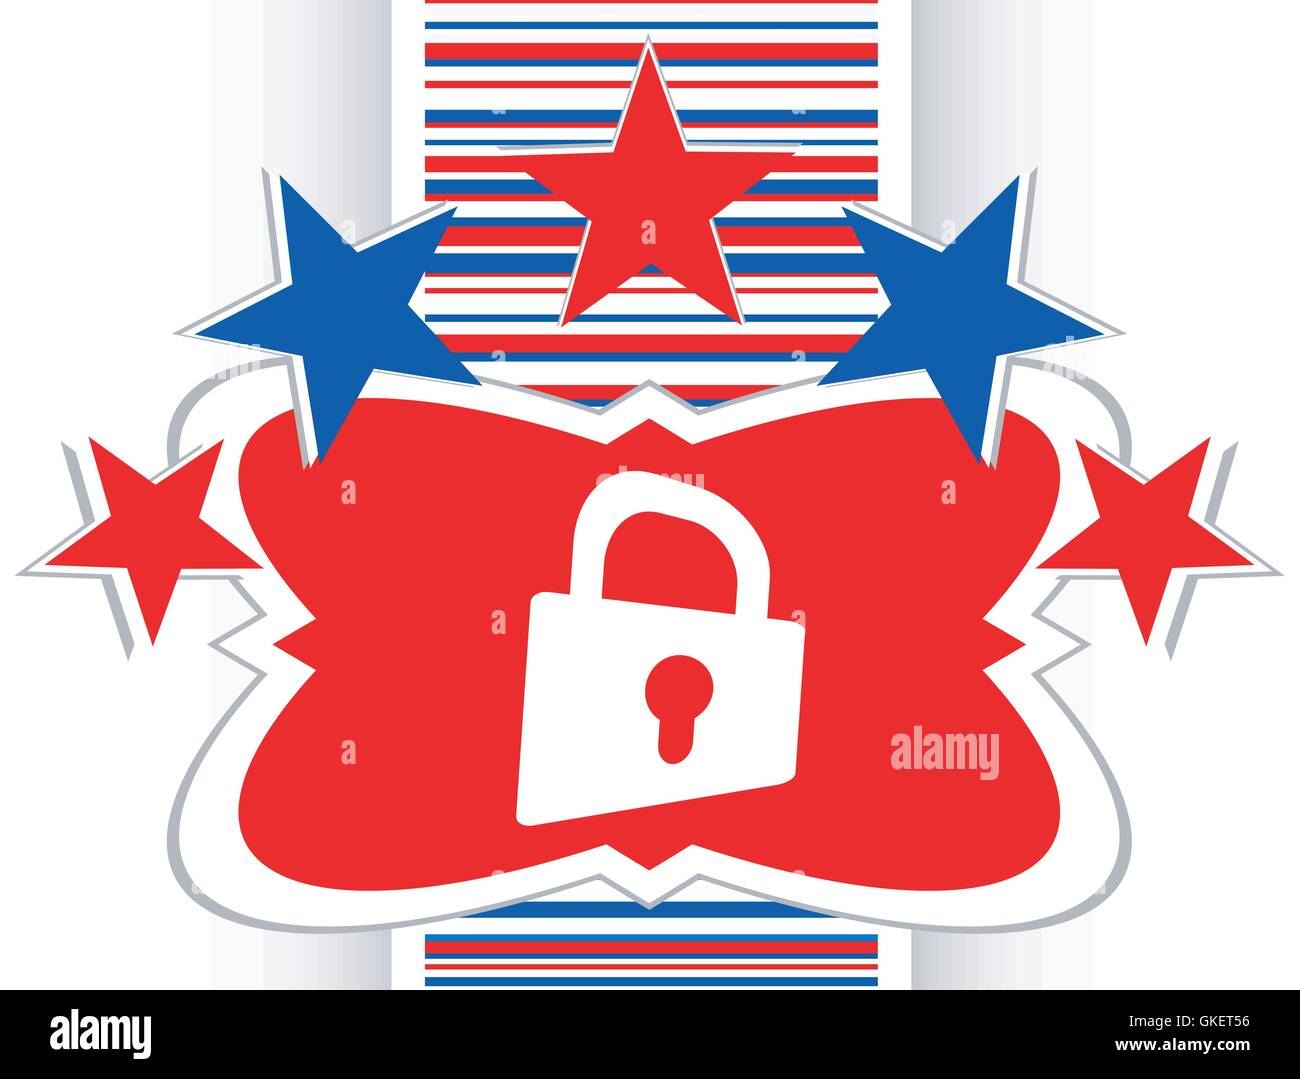 Padlock icon web sign. Rounded web app button vector - Stock Image